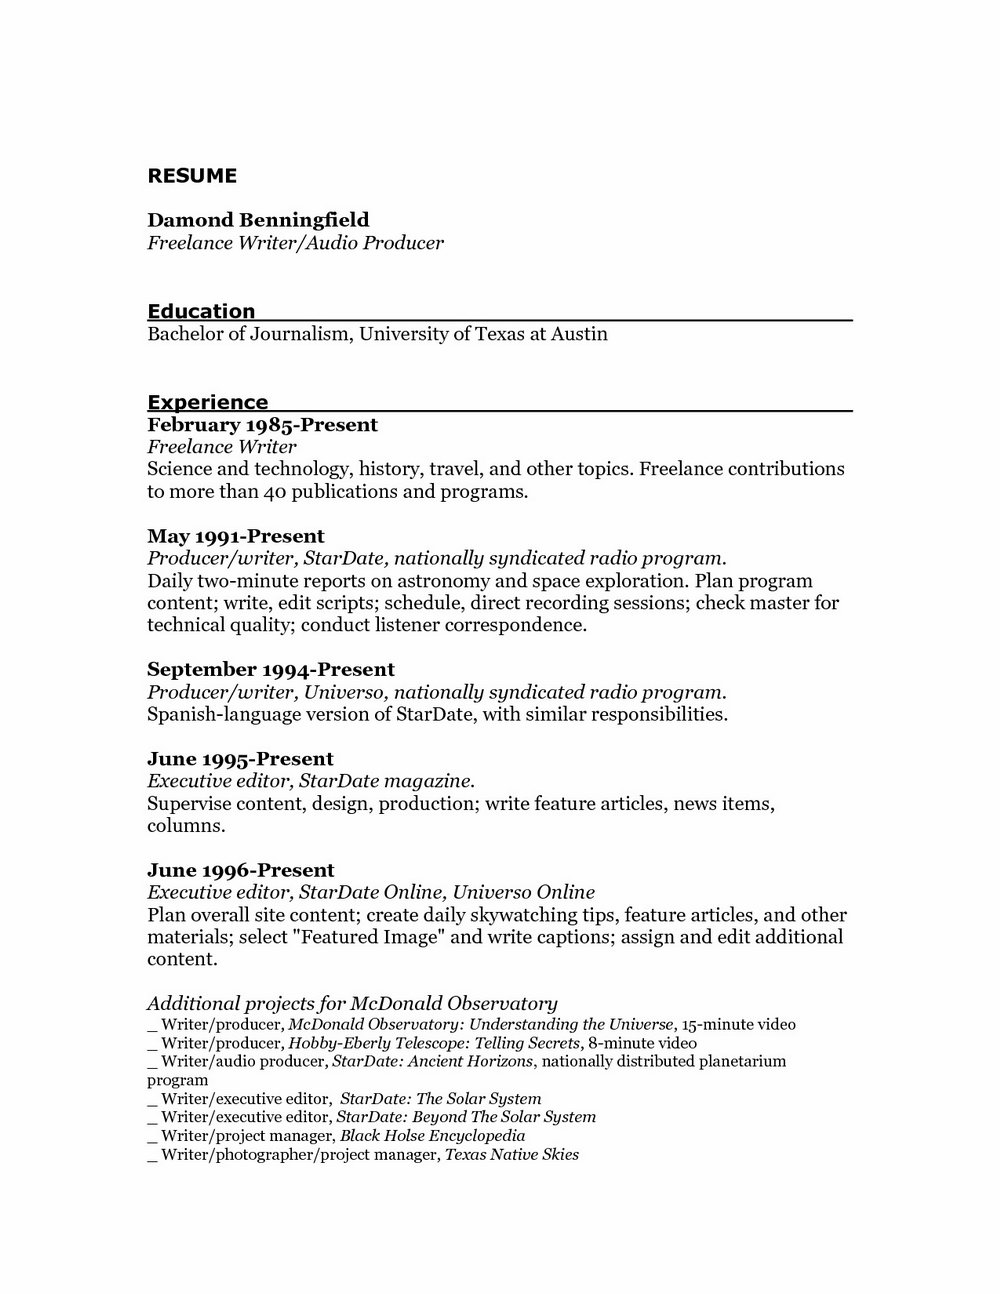 caregiver cover letter sample without experience